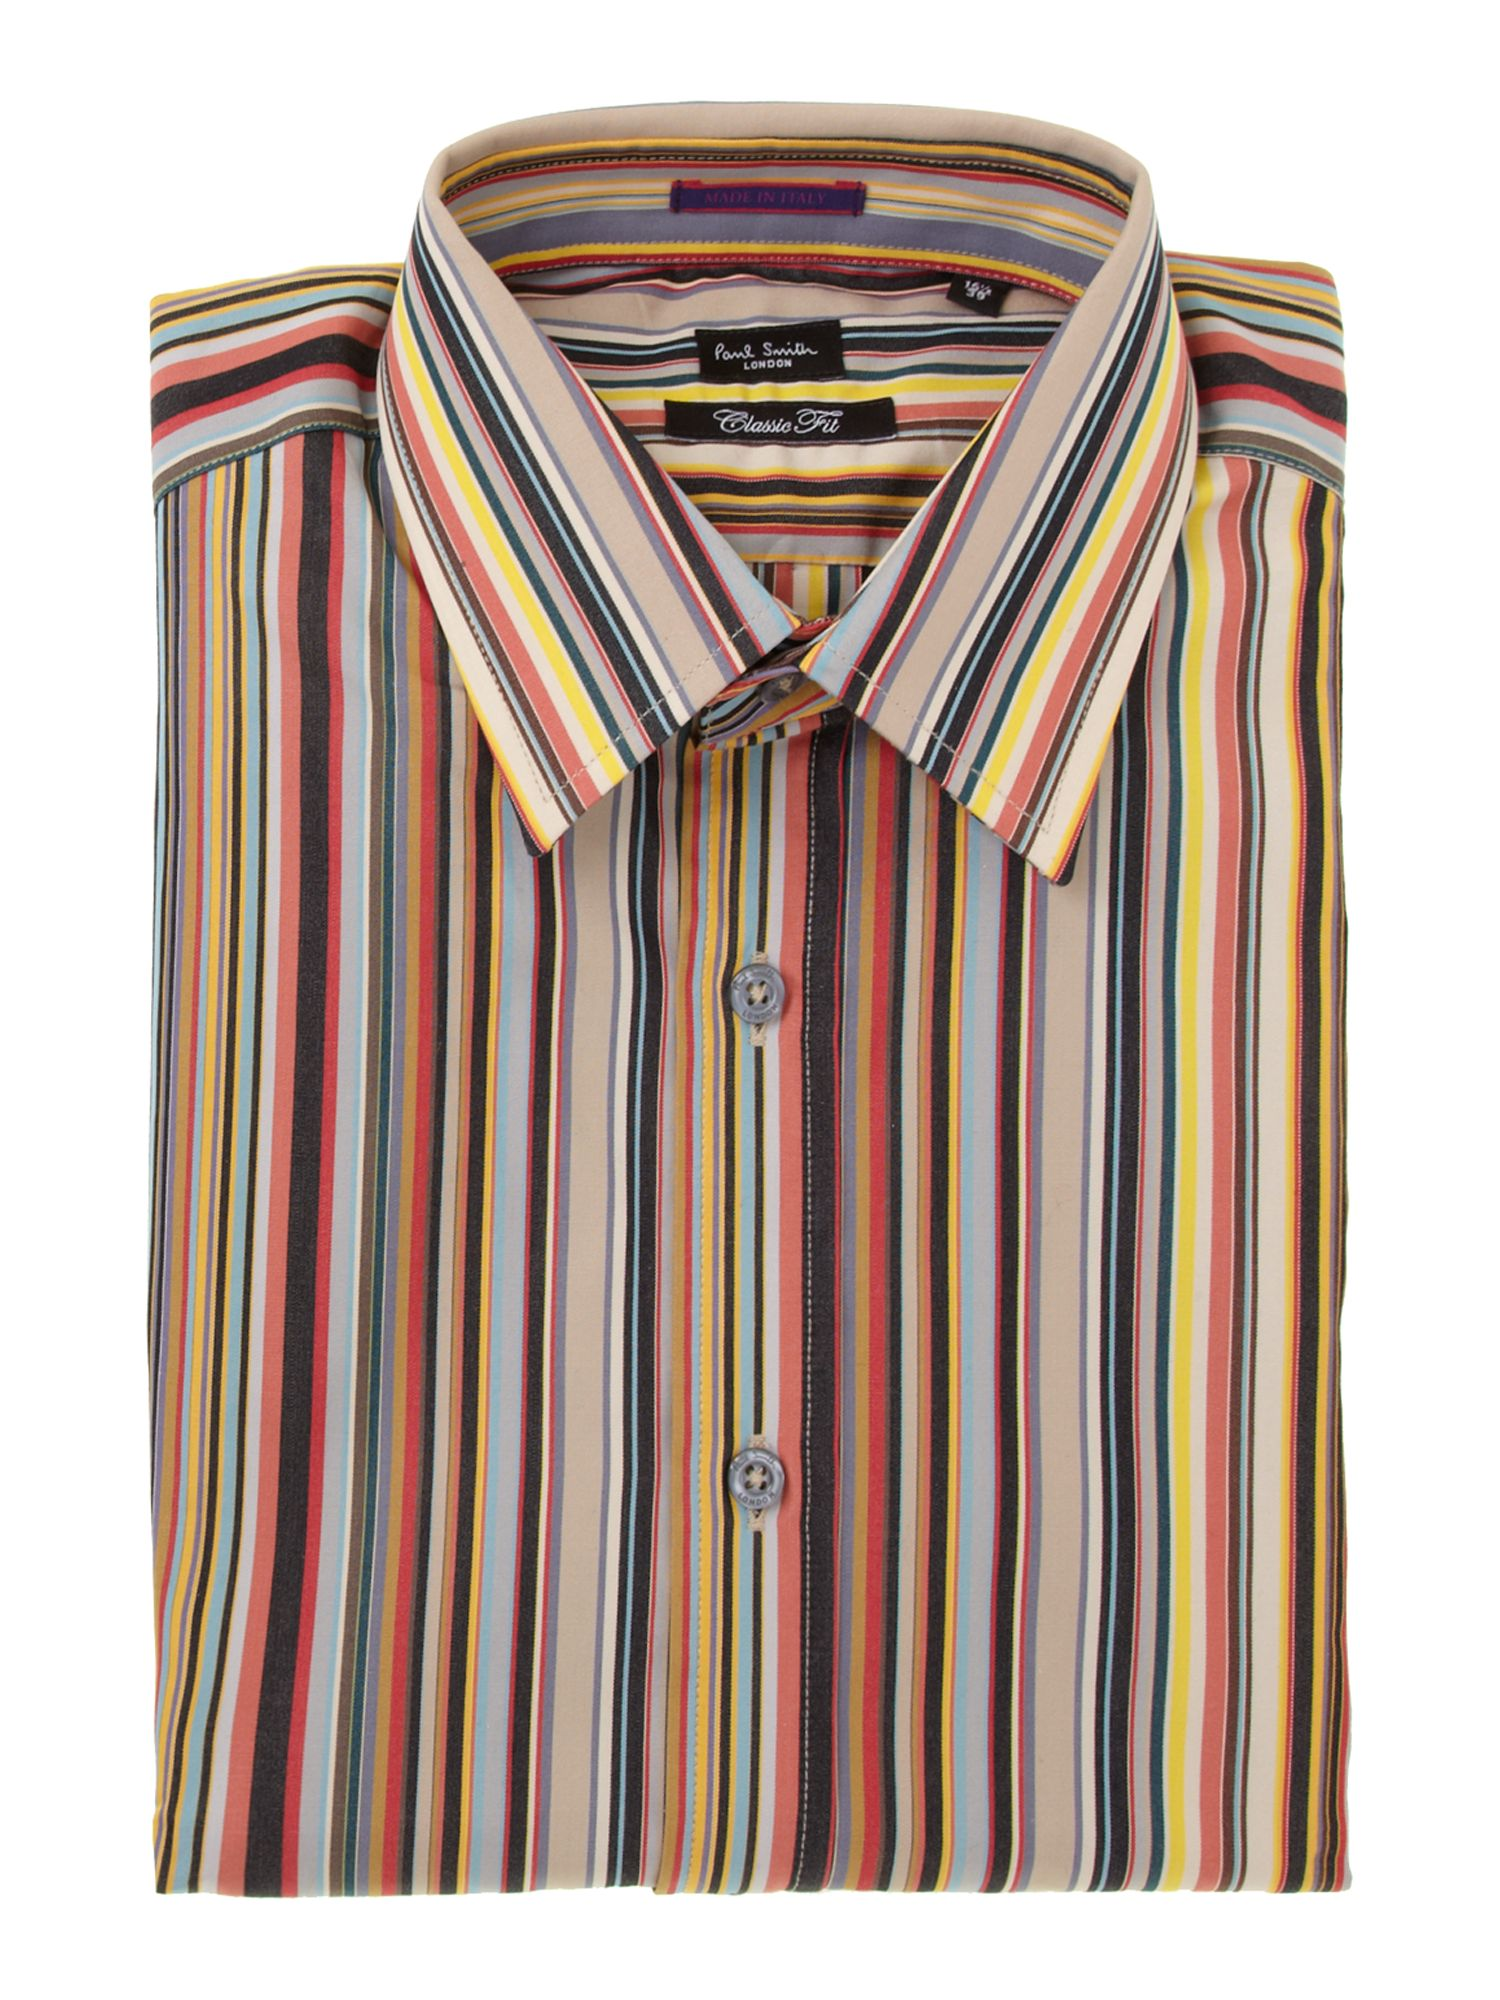 Zegna Mens Shirts